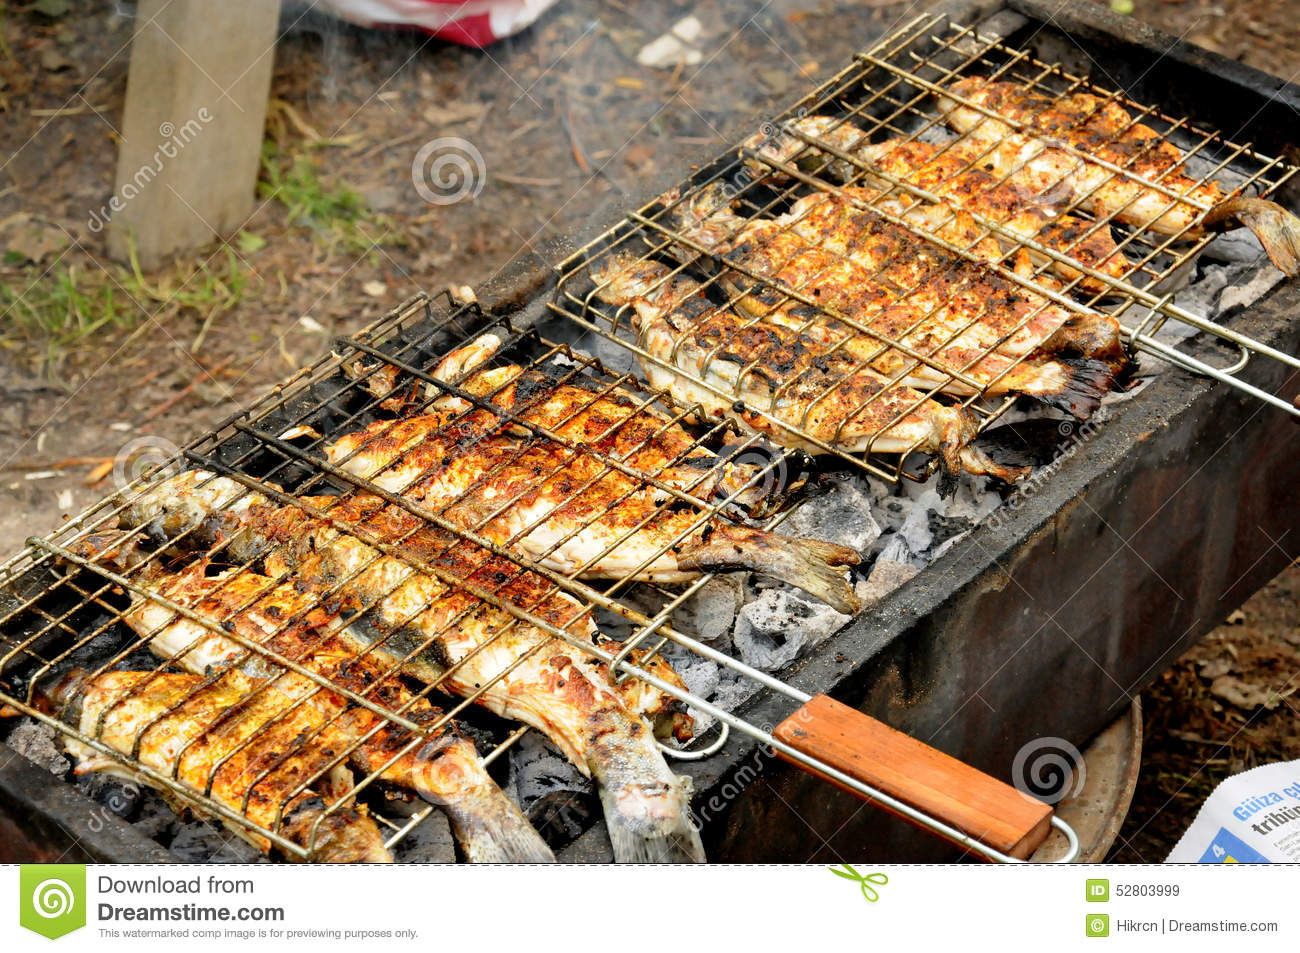 Barbeque In The Garden In Summer Stock Image - Image of picnic ...